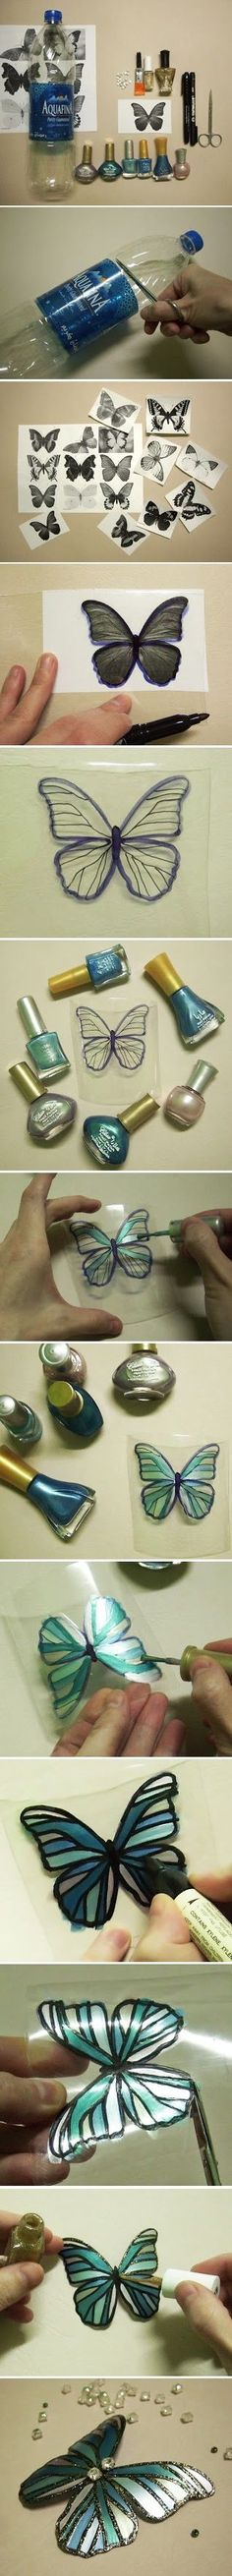 Make Butterfly Decorations Using Plastic Bottles